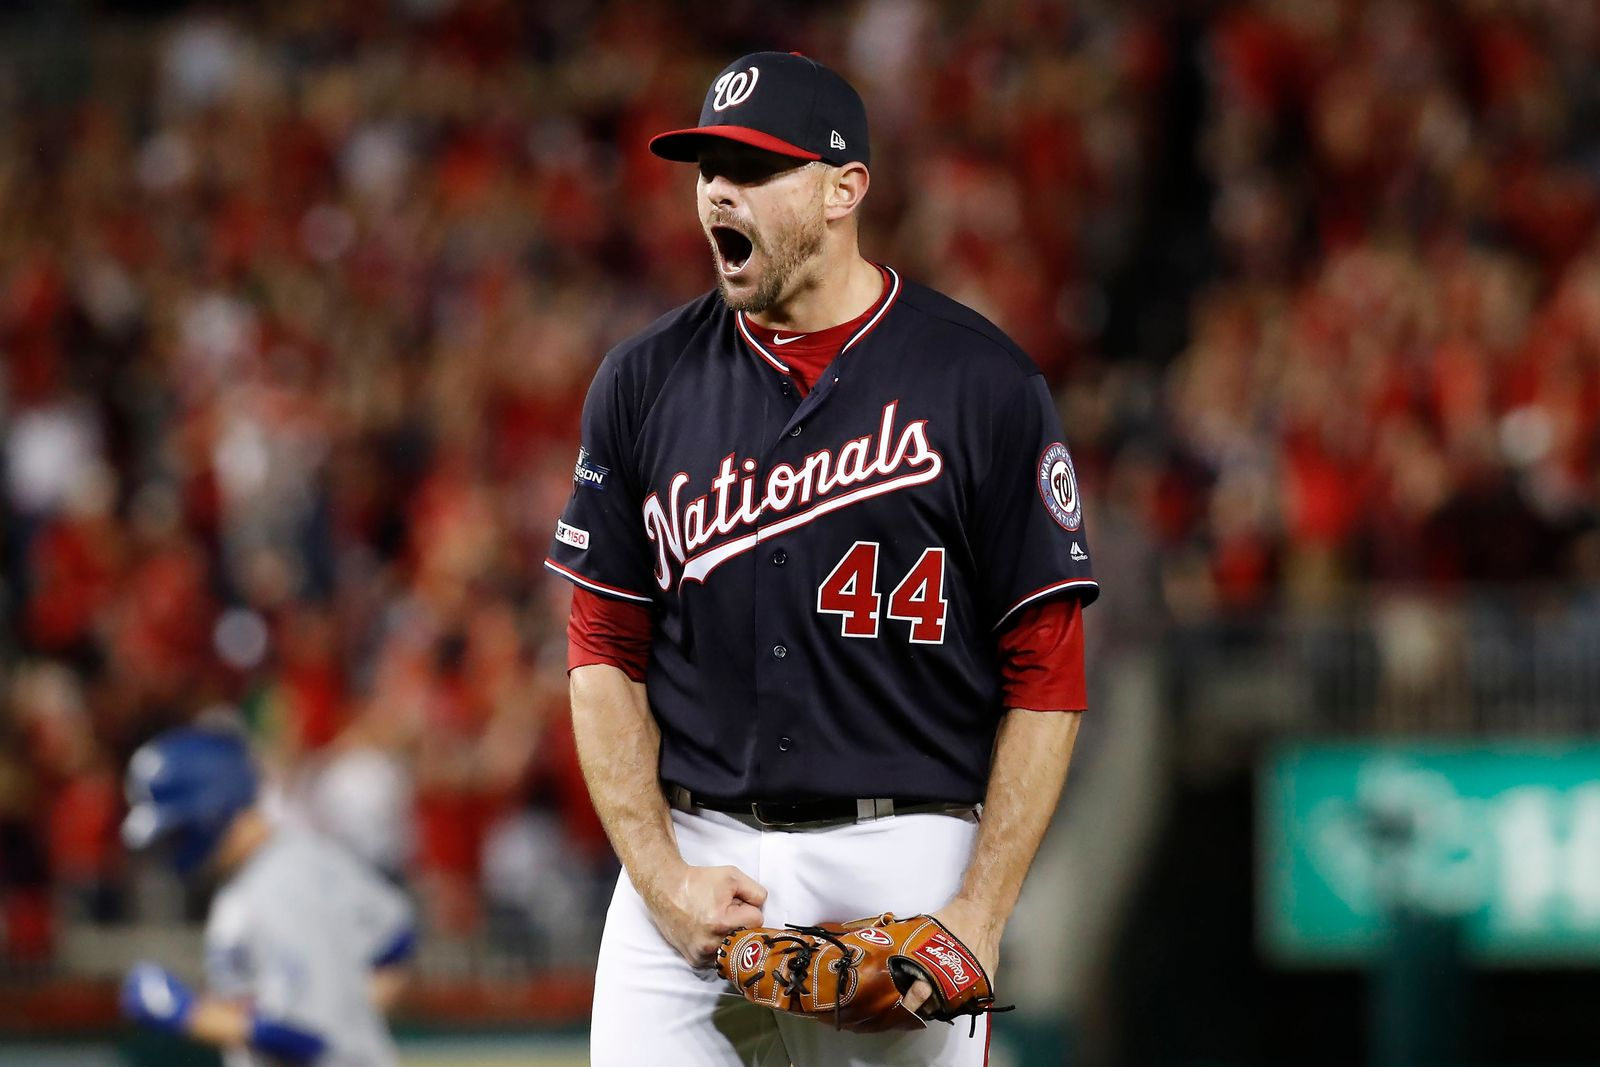 Washington Nationals relief pitcher Daniel Hudson (44) celebrates the final out of Game 4 of a baseball National League Division Series against the Los Angeles Dodgers, Monday, Oct. 7, 2019, in Washington. (AP Photo/Alex Brandon)